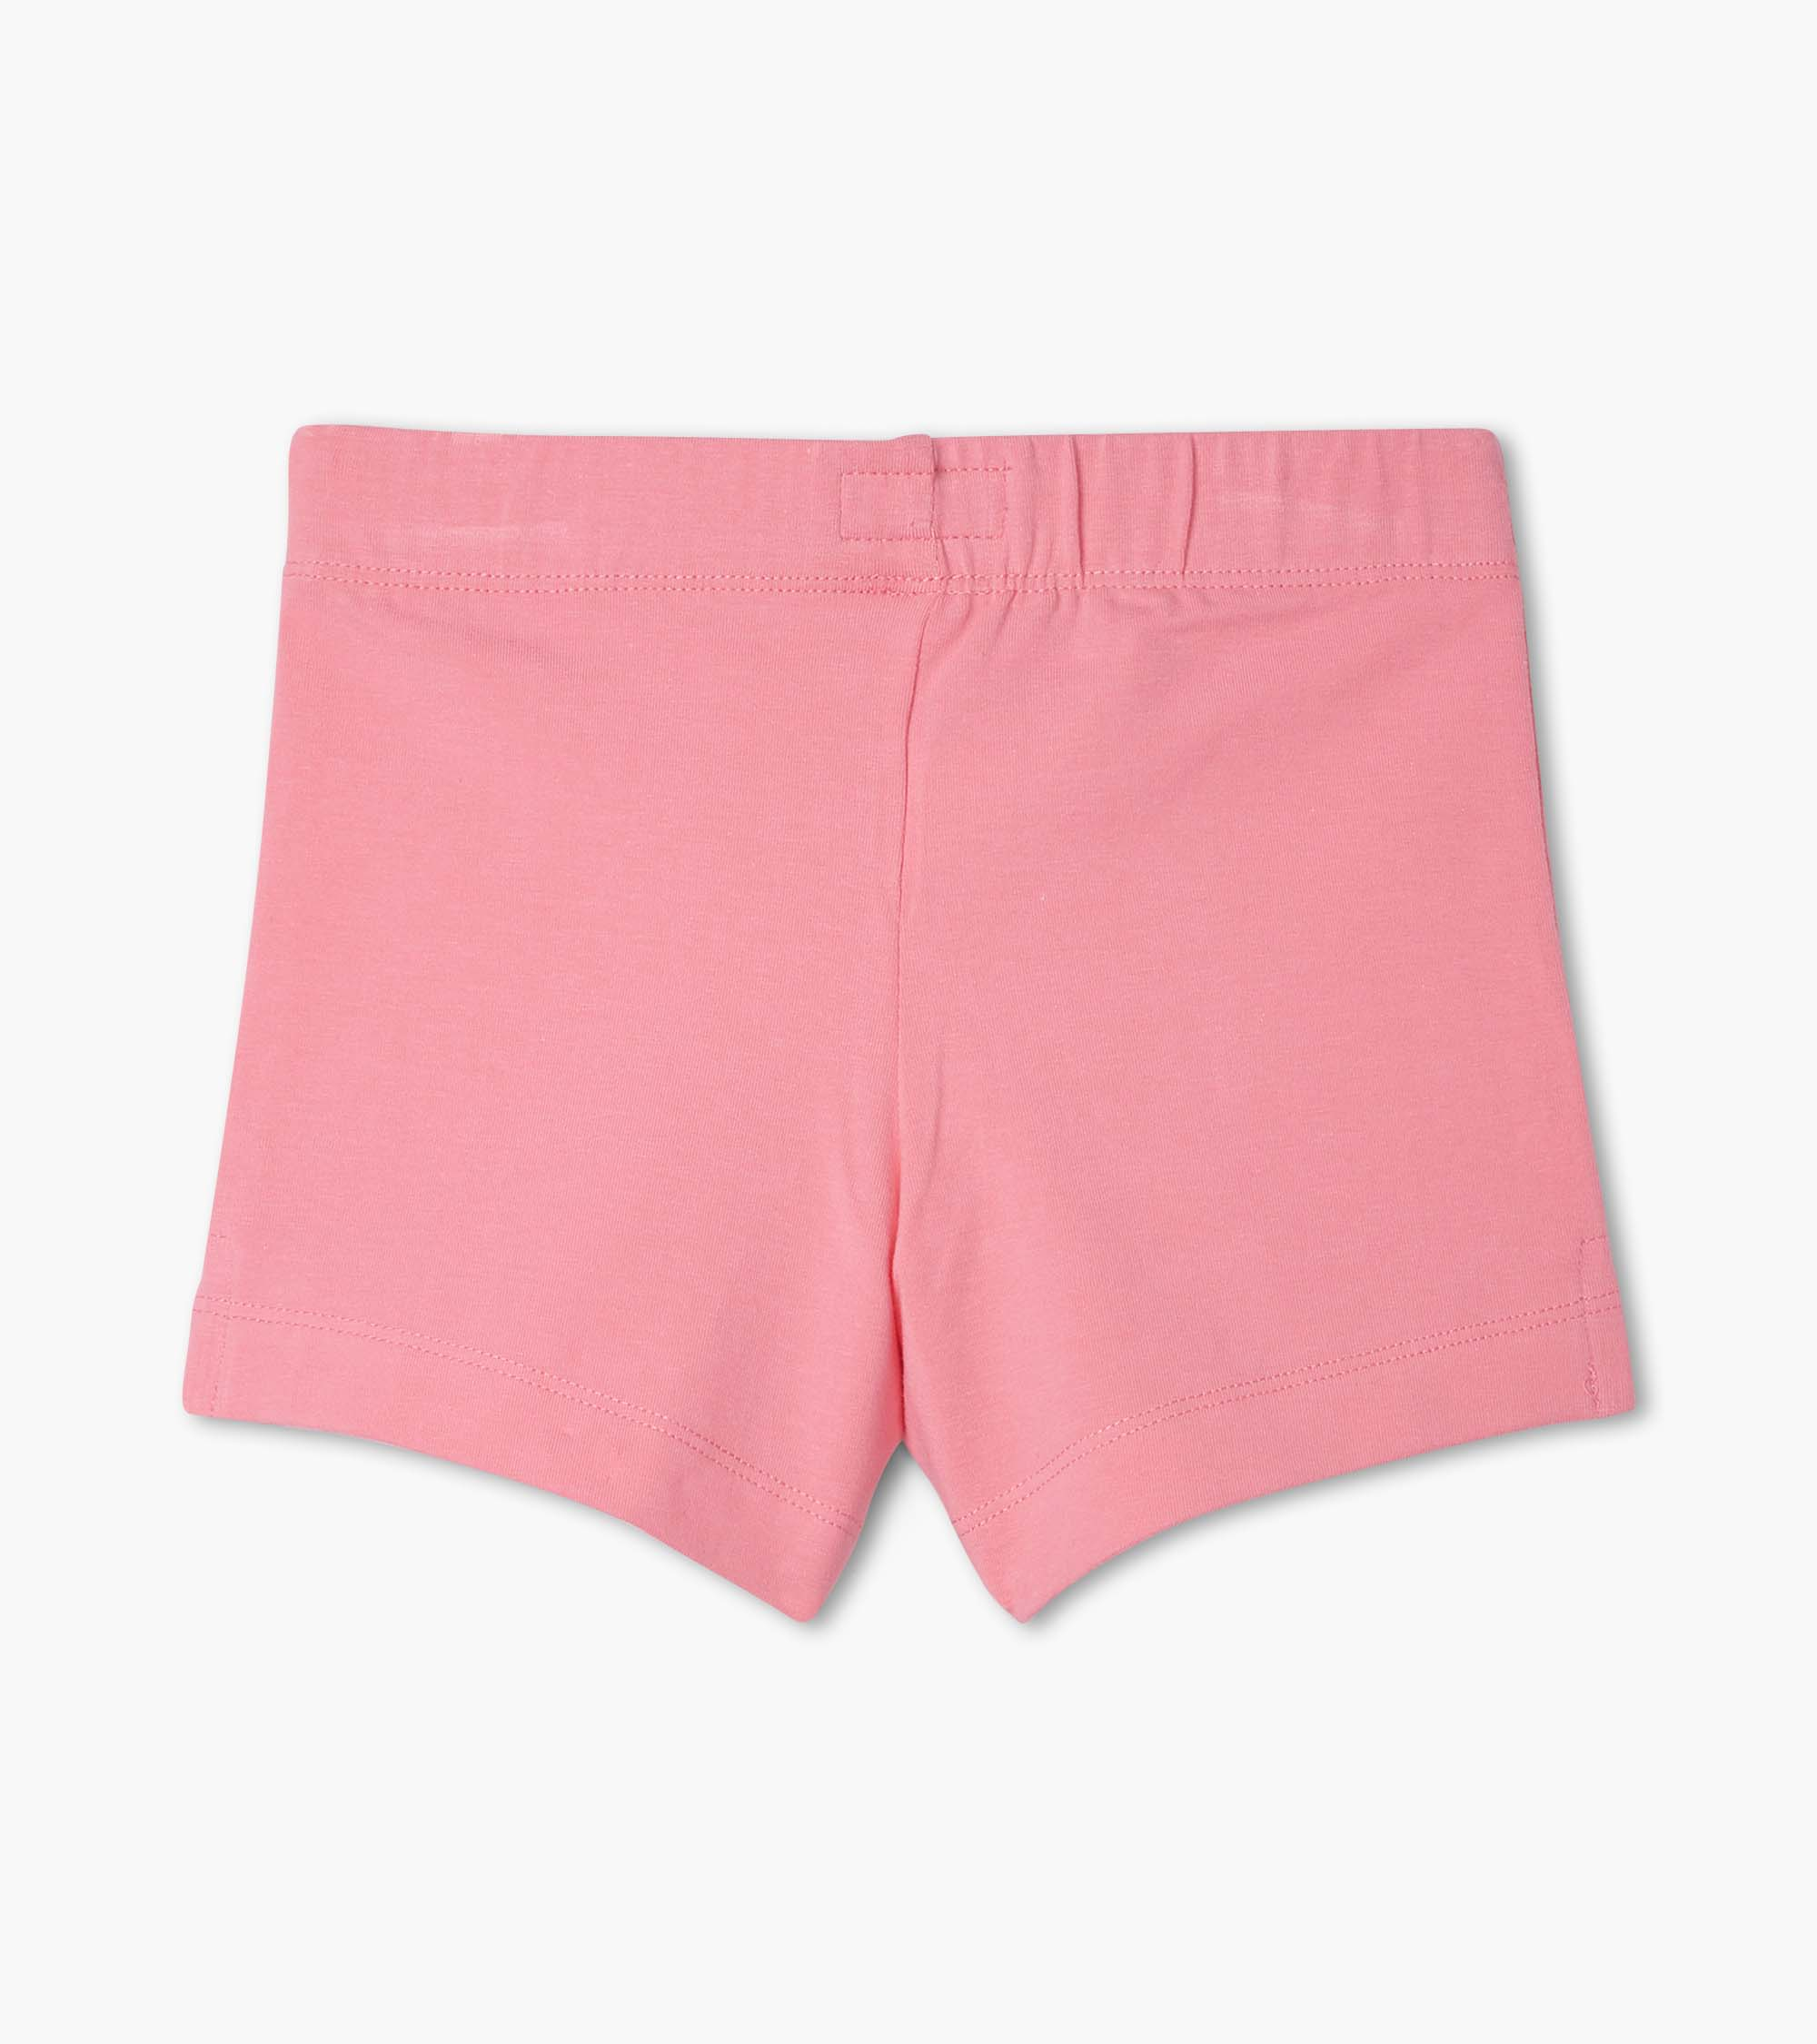 Hatley Light Pink Bicycle Shorts